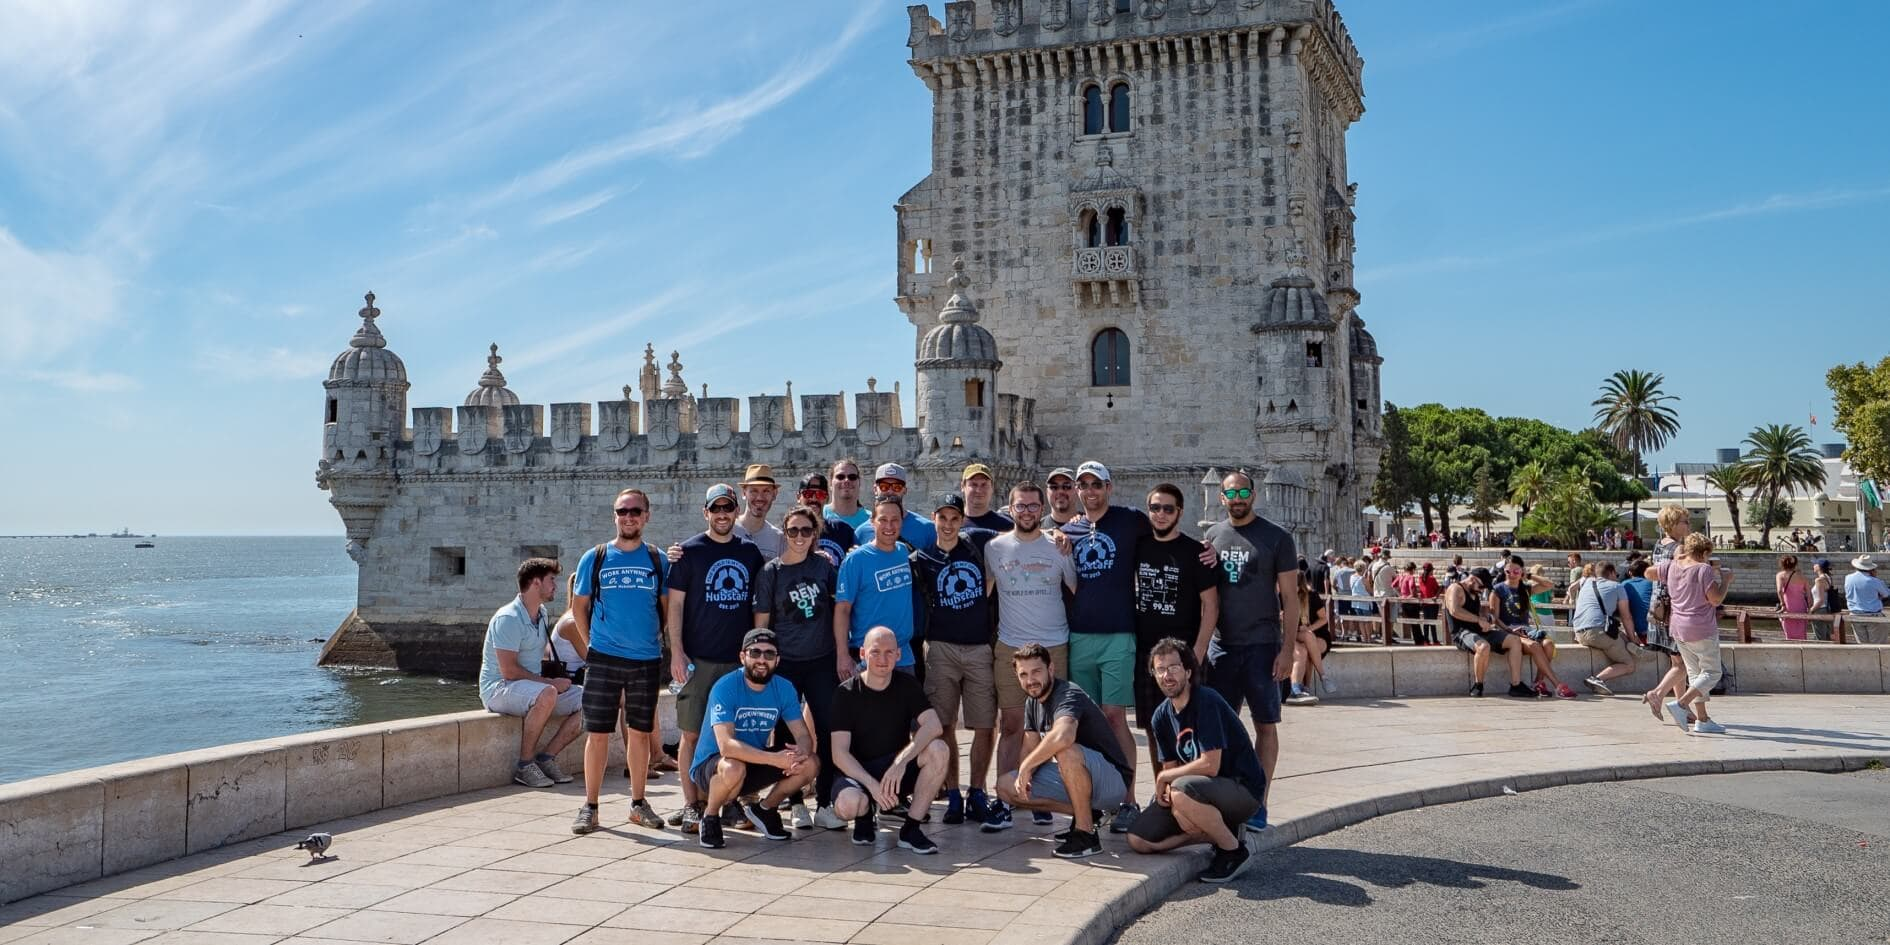 From Castles to Hackathons: The Best Advice From Our Retreat in Lisbon